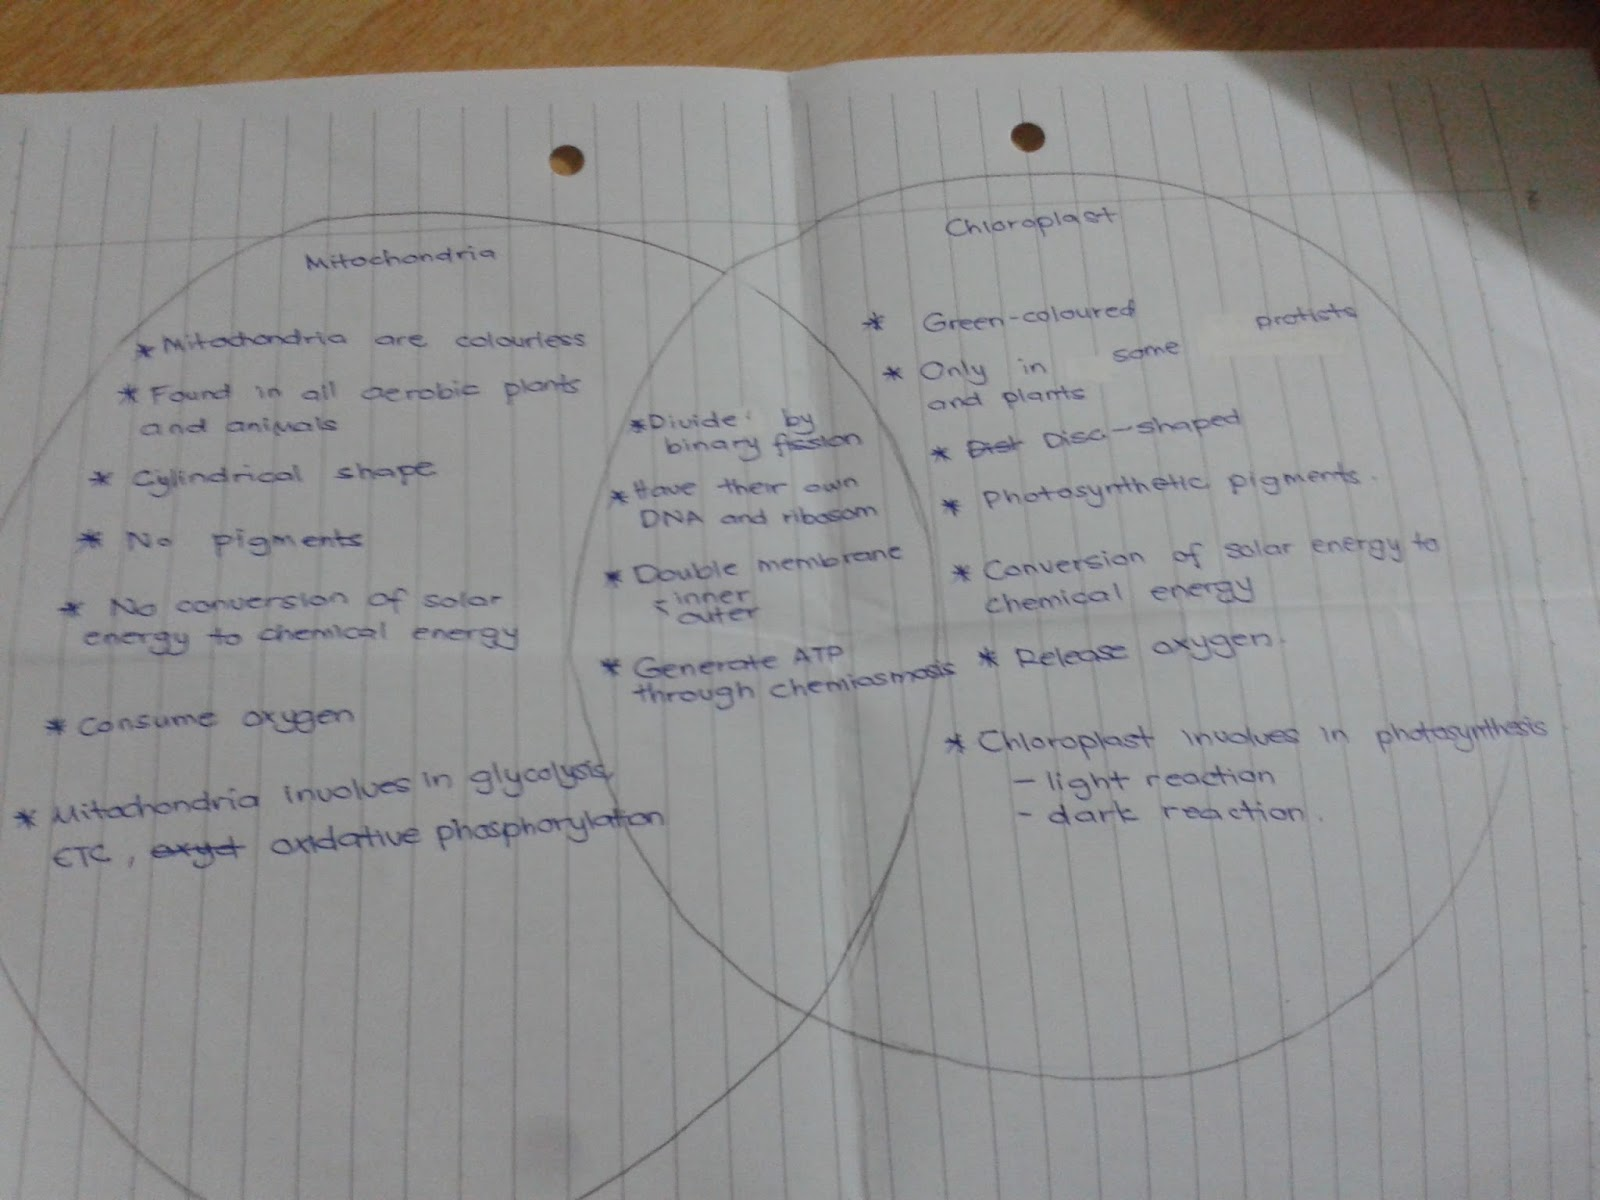 Venn diagram cytokinesis plant animal cells - There Are A Lot Of New Things That I Have Learned This Week As For Next Week Dr Parameswari Is Going To Teach Us Cell Cycle And Totipotency